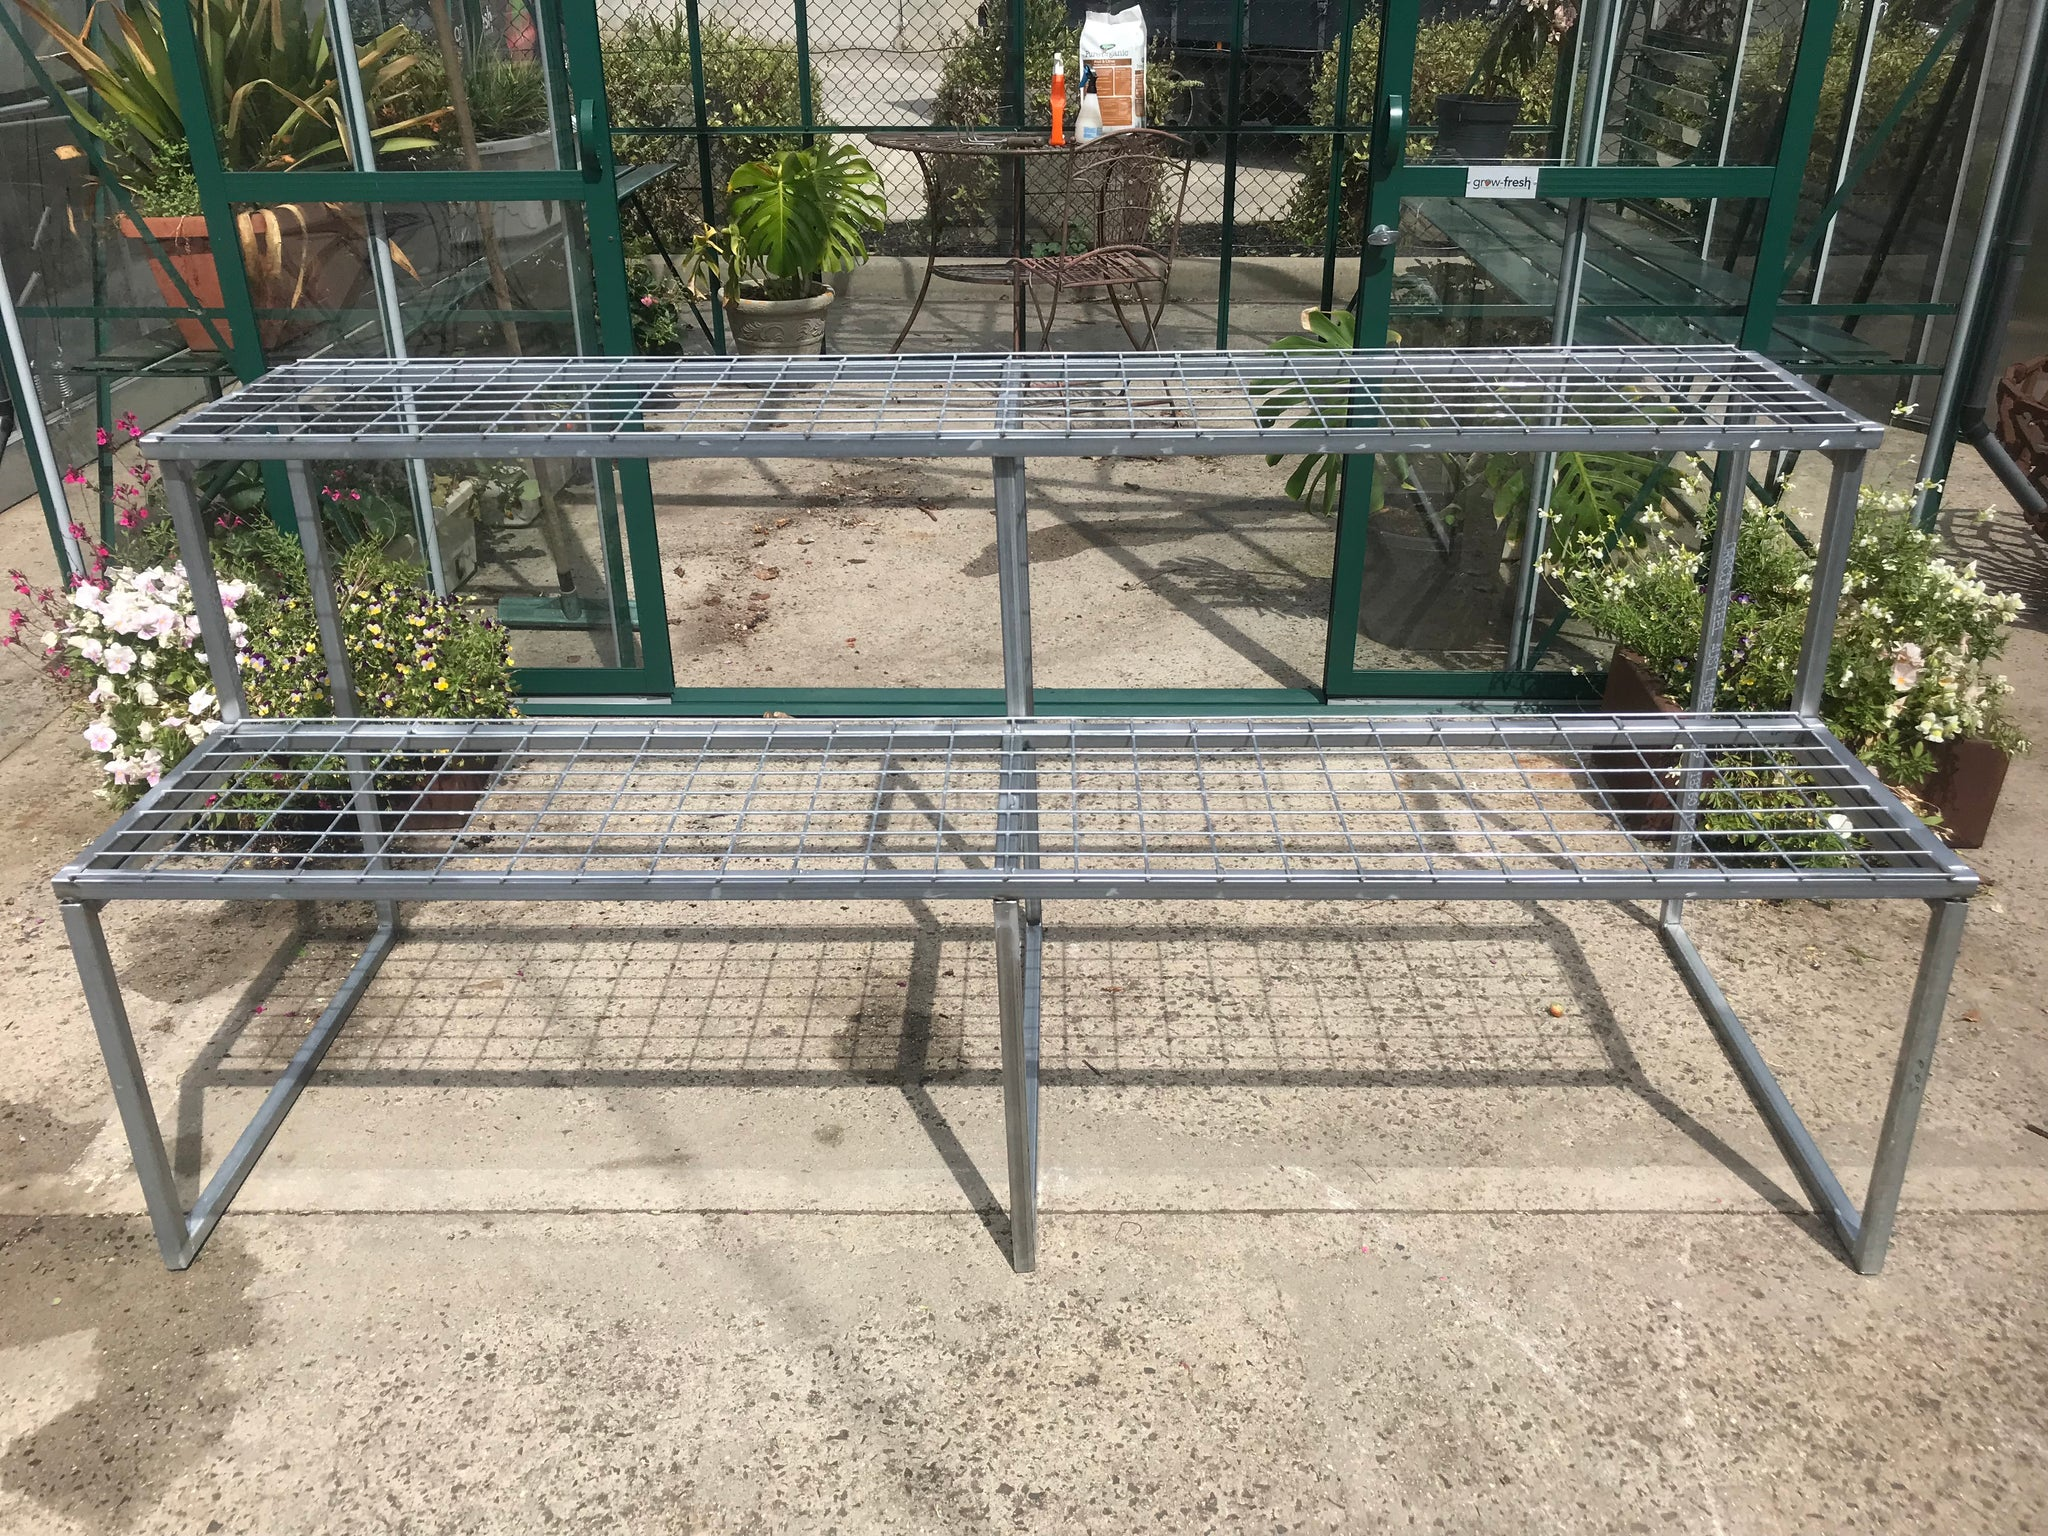 2-Tier Galvanised Mesh-Top Bench- 2000Lx800Wx900H